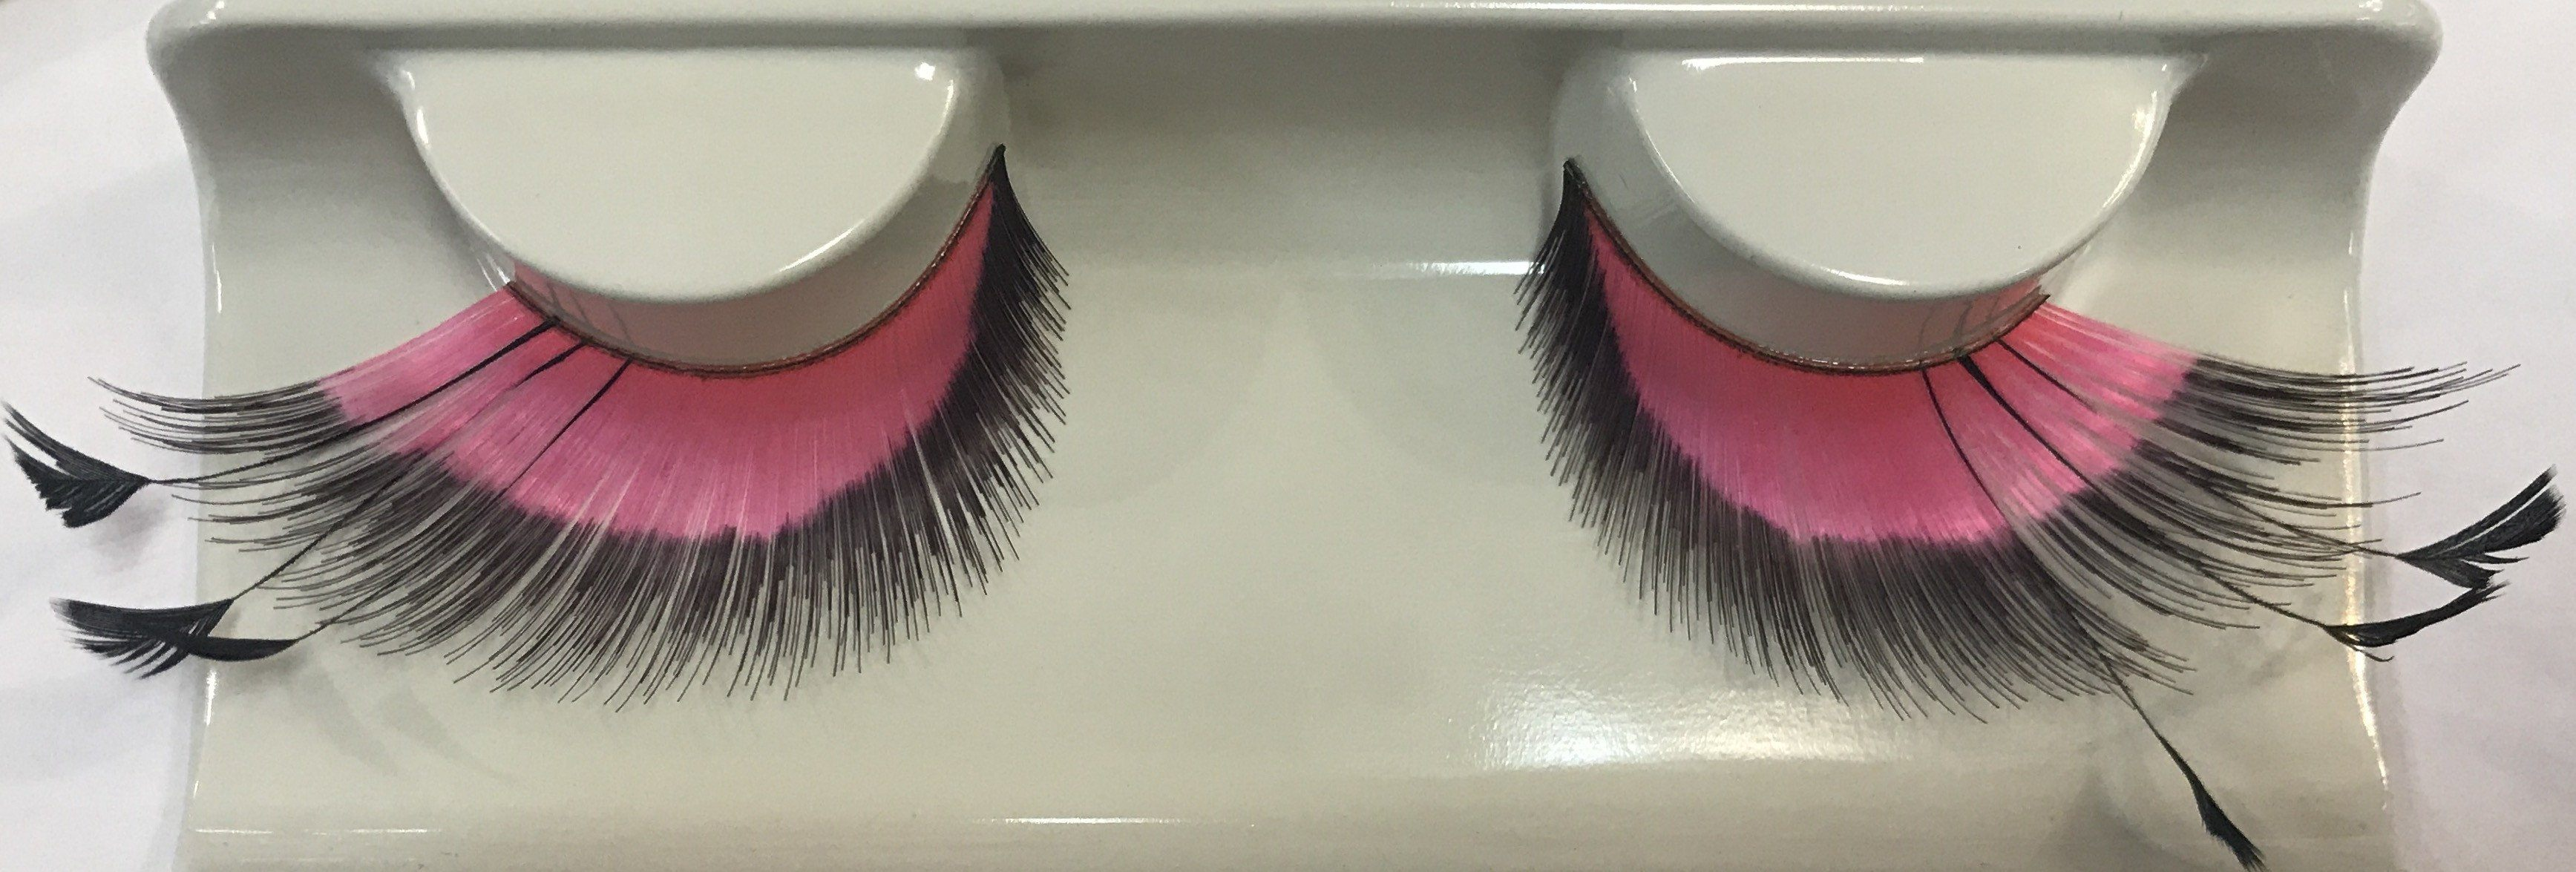 Accessory - Carnival Dramatic False Eyelashes